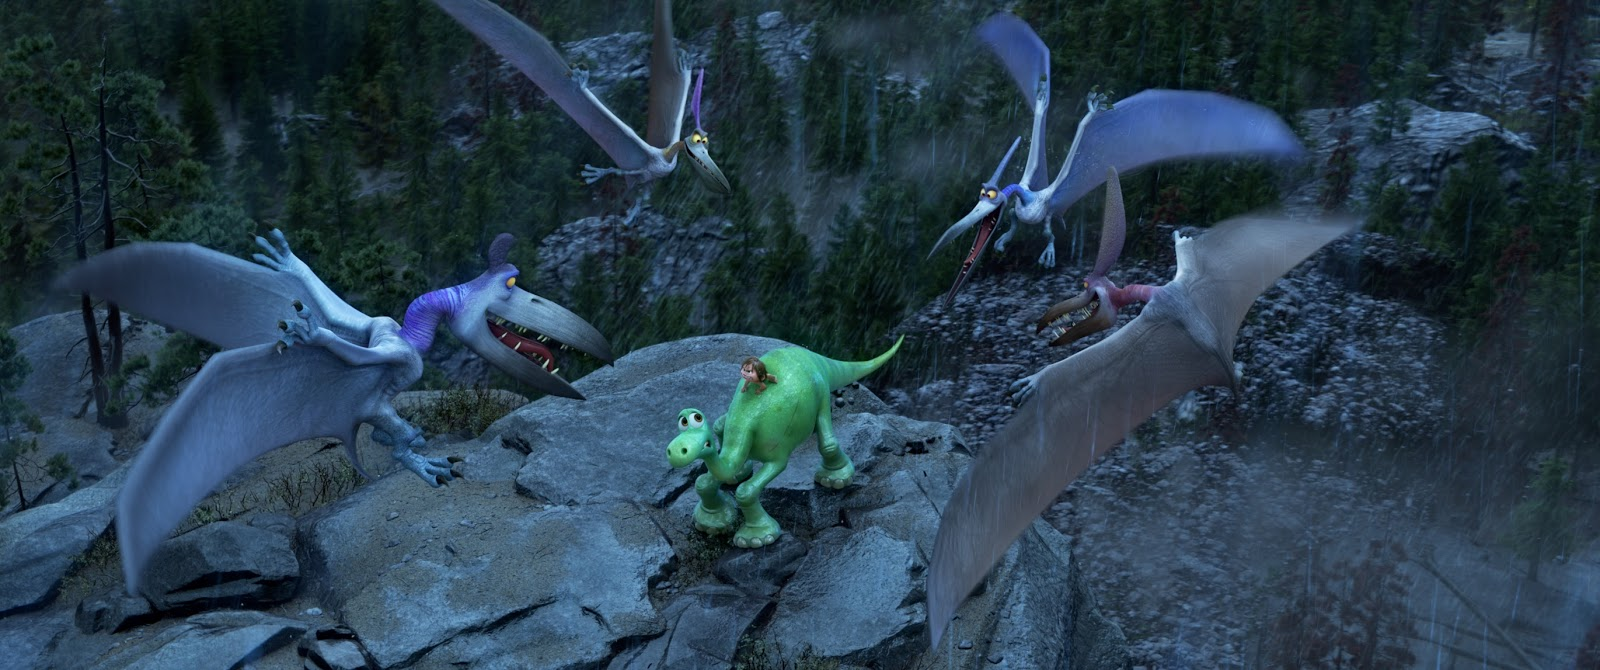 The Scenes With Poppa Dying T Rex Roaring Raptors Rustling And Pterodactyls Attacking Can Be A Bit Intense Scary Violent For Younger